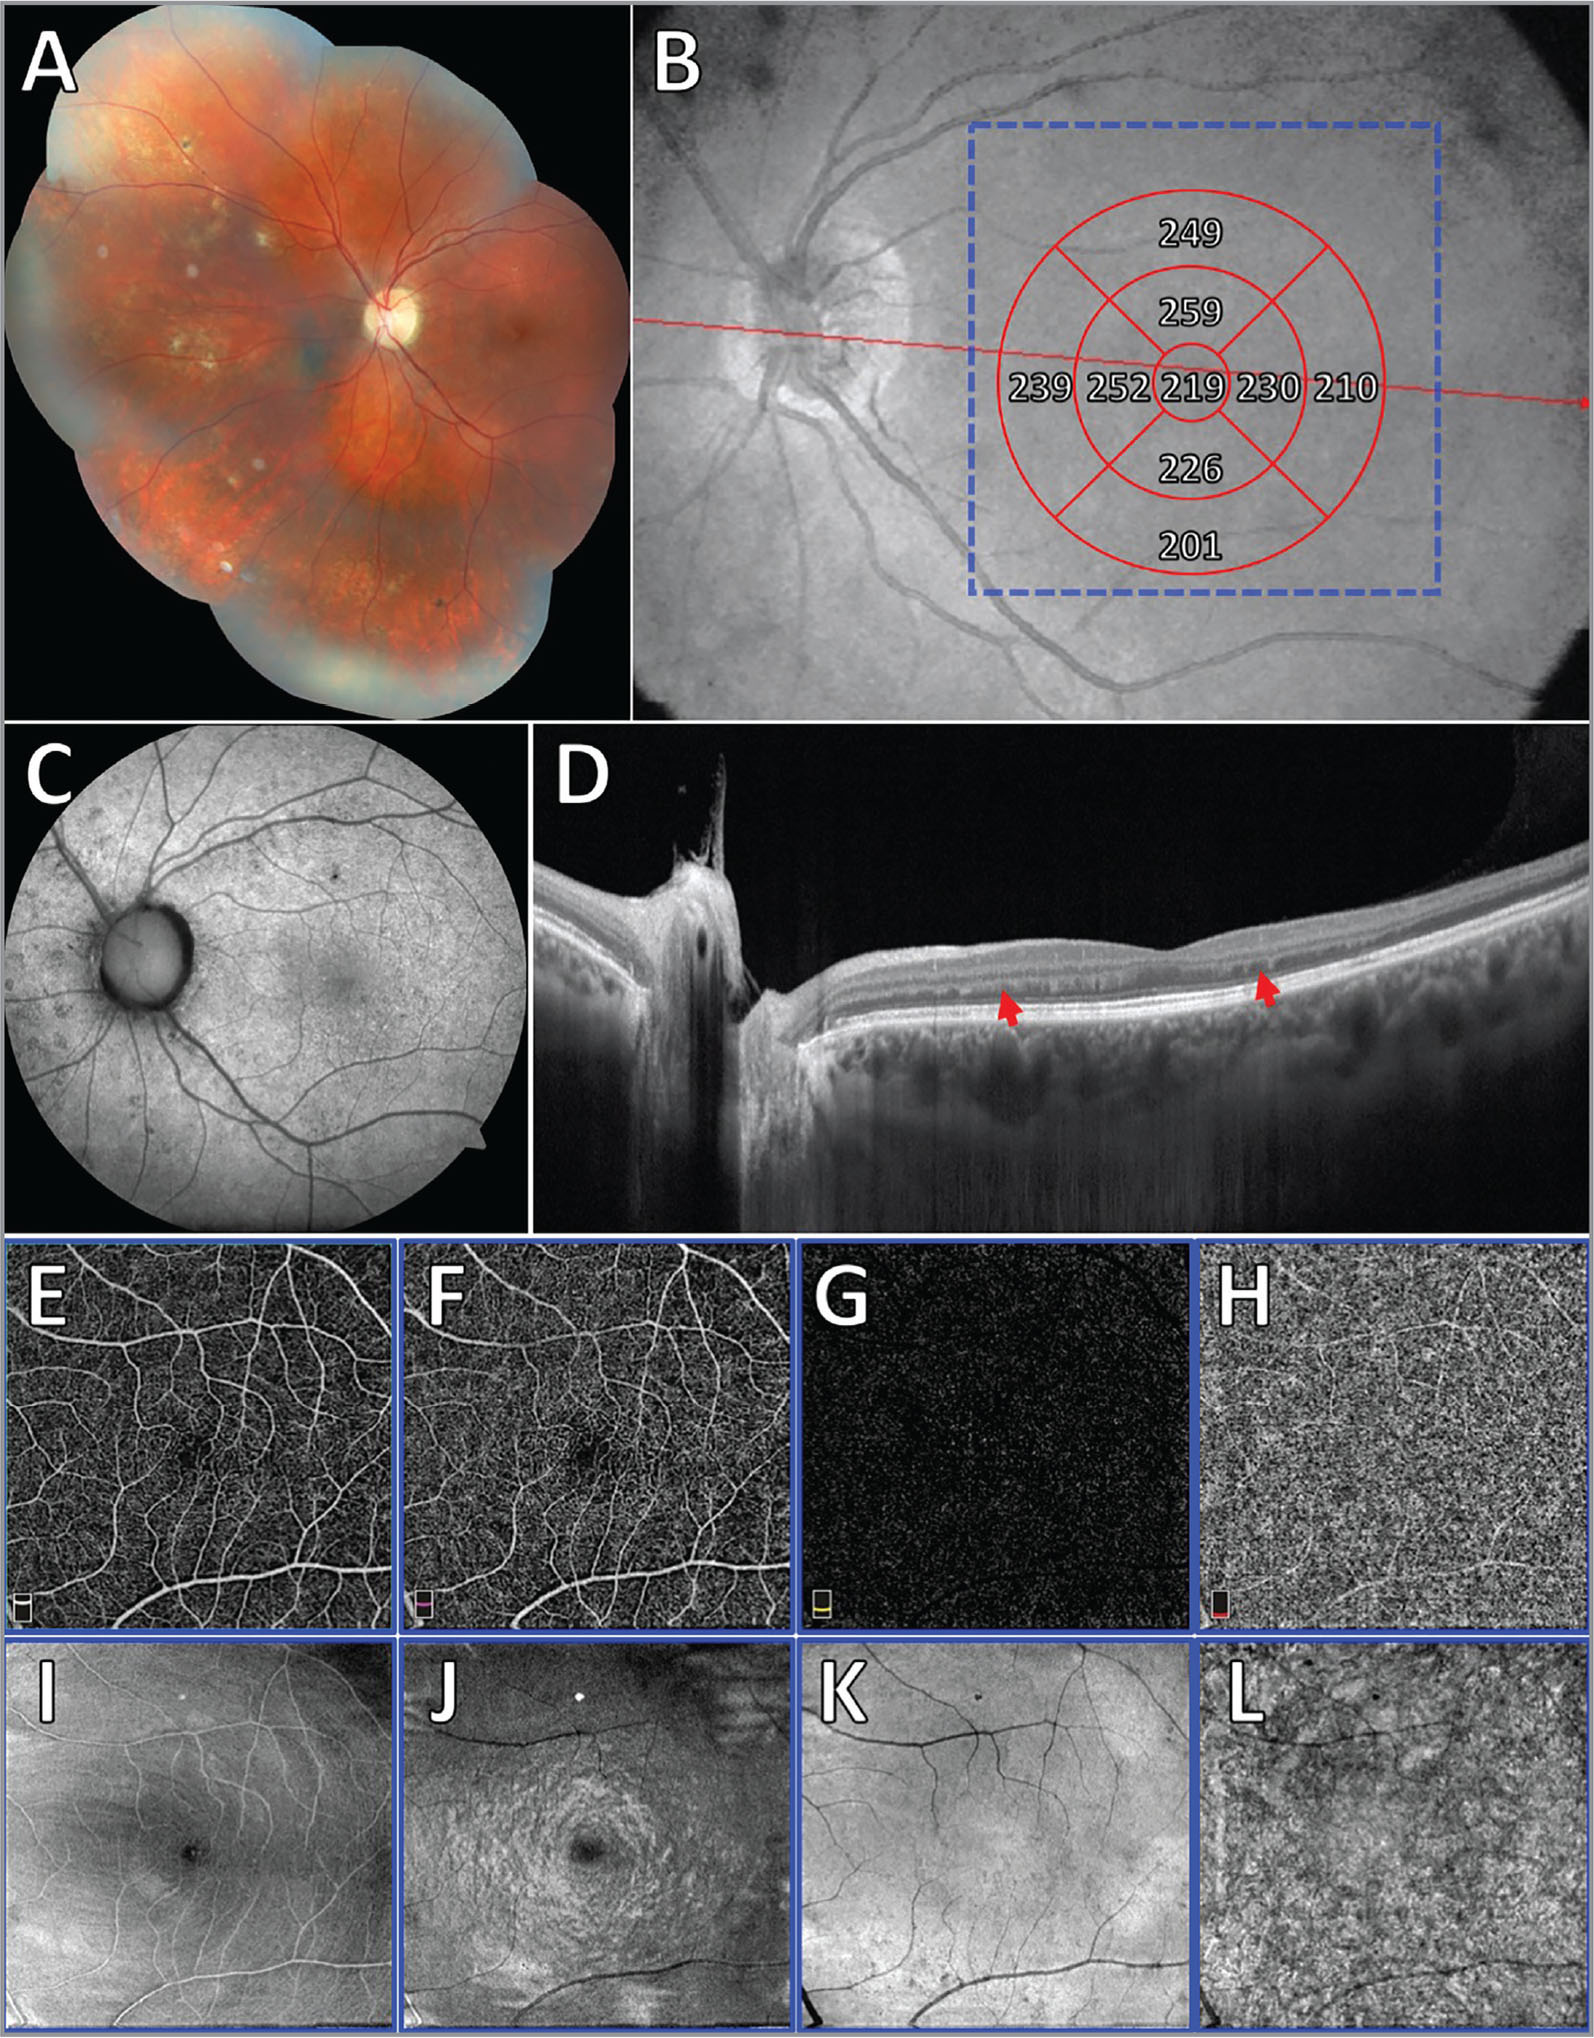 Case 4. Multimodal imaging of a 21-year-old woman with late-stage diffuse unilateral subacute neuroretinitis in the left eye. (A) Color fundus photograph shows diffuse retinal pigment epithelium atrophy, attenuated retinal vessels, and optic disc pallor. (B) Reference fundus image demonstrates normal values on the macular thickness map. (C) Fundus autofluorescence reveals diffuse hypoautofluorescent spots in the fundus. (D) Cross-sectional optical coherence tomography (OCT) represented by the red line in image B shows retinal atrophy along with an irregular outer plexiform layer (red arrowheads). (E, F, G, H) OCT angiography (represented by the blue square in image B) of the superficial capillary plexus (E), deep capillary plexus (F), outer retina (G), and choriocapillaris (H) shows absence of vascular perfusion abnormalities in the macular area. (I, J, K, L) En face OCT correspondent to the segmentation performed, respectively, in images E, F, G, and H, reveals an abnormal pattern of imaging probably related to the outer plexiform layer irregularities seen in image D.